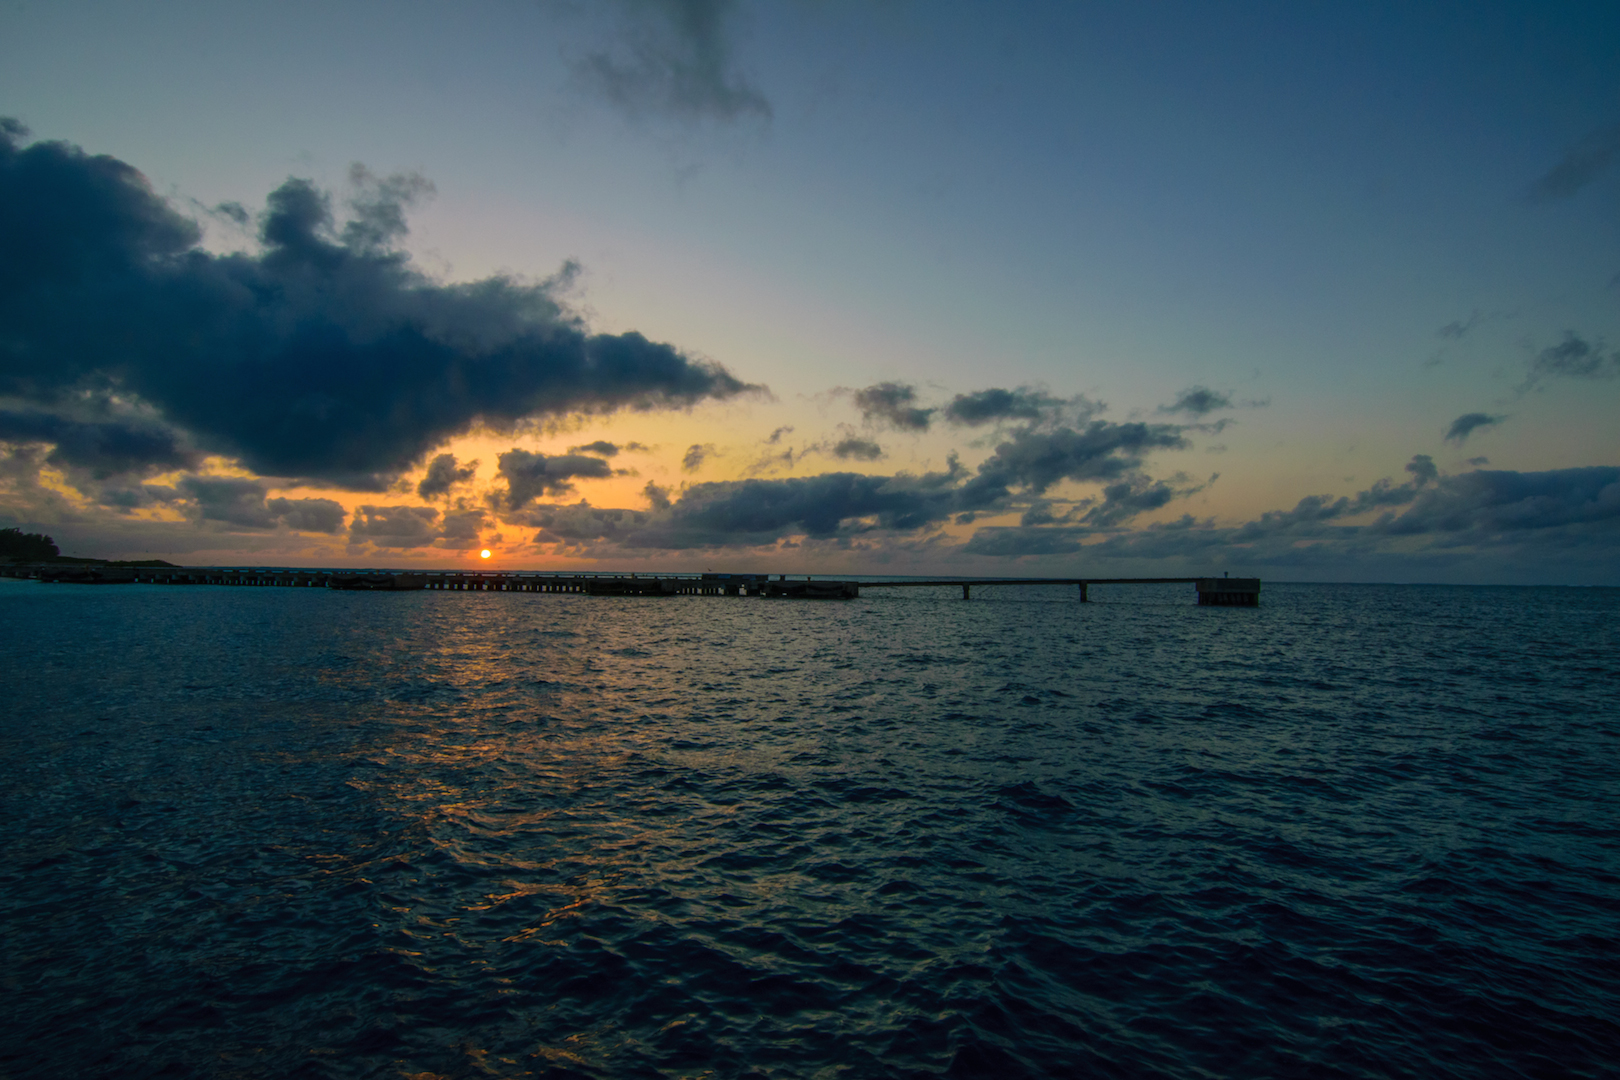 Midway, Atoll, fueling, Pier, Sunset